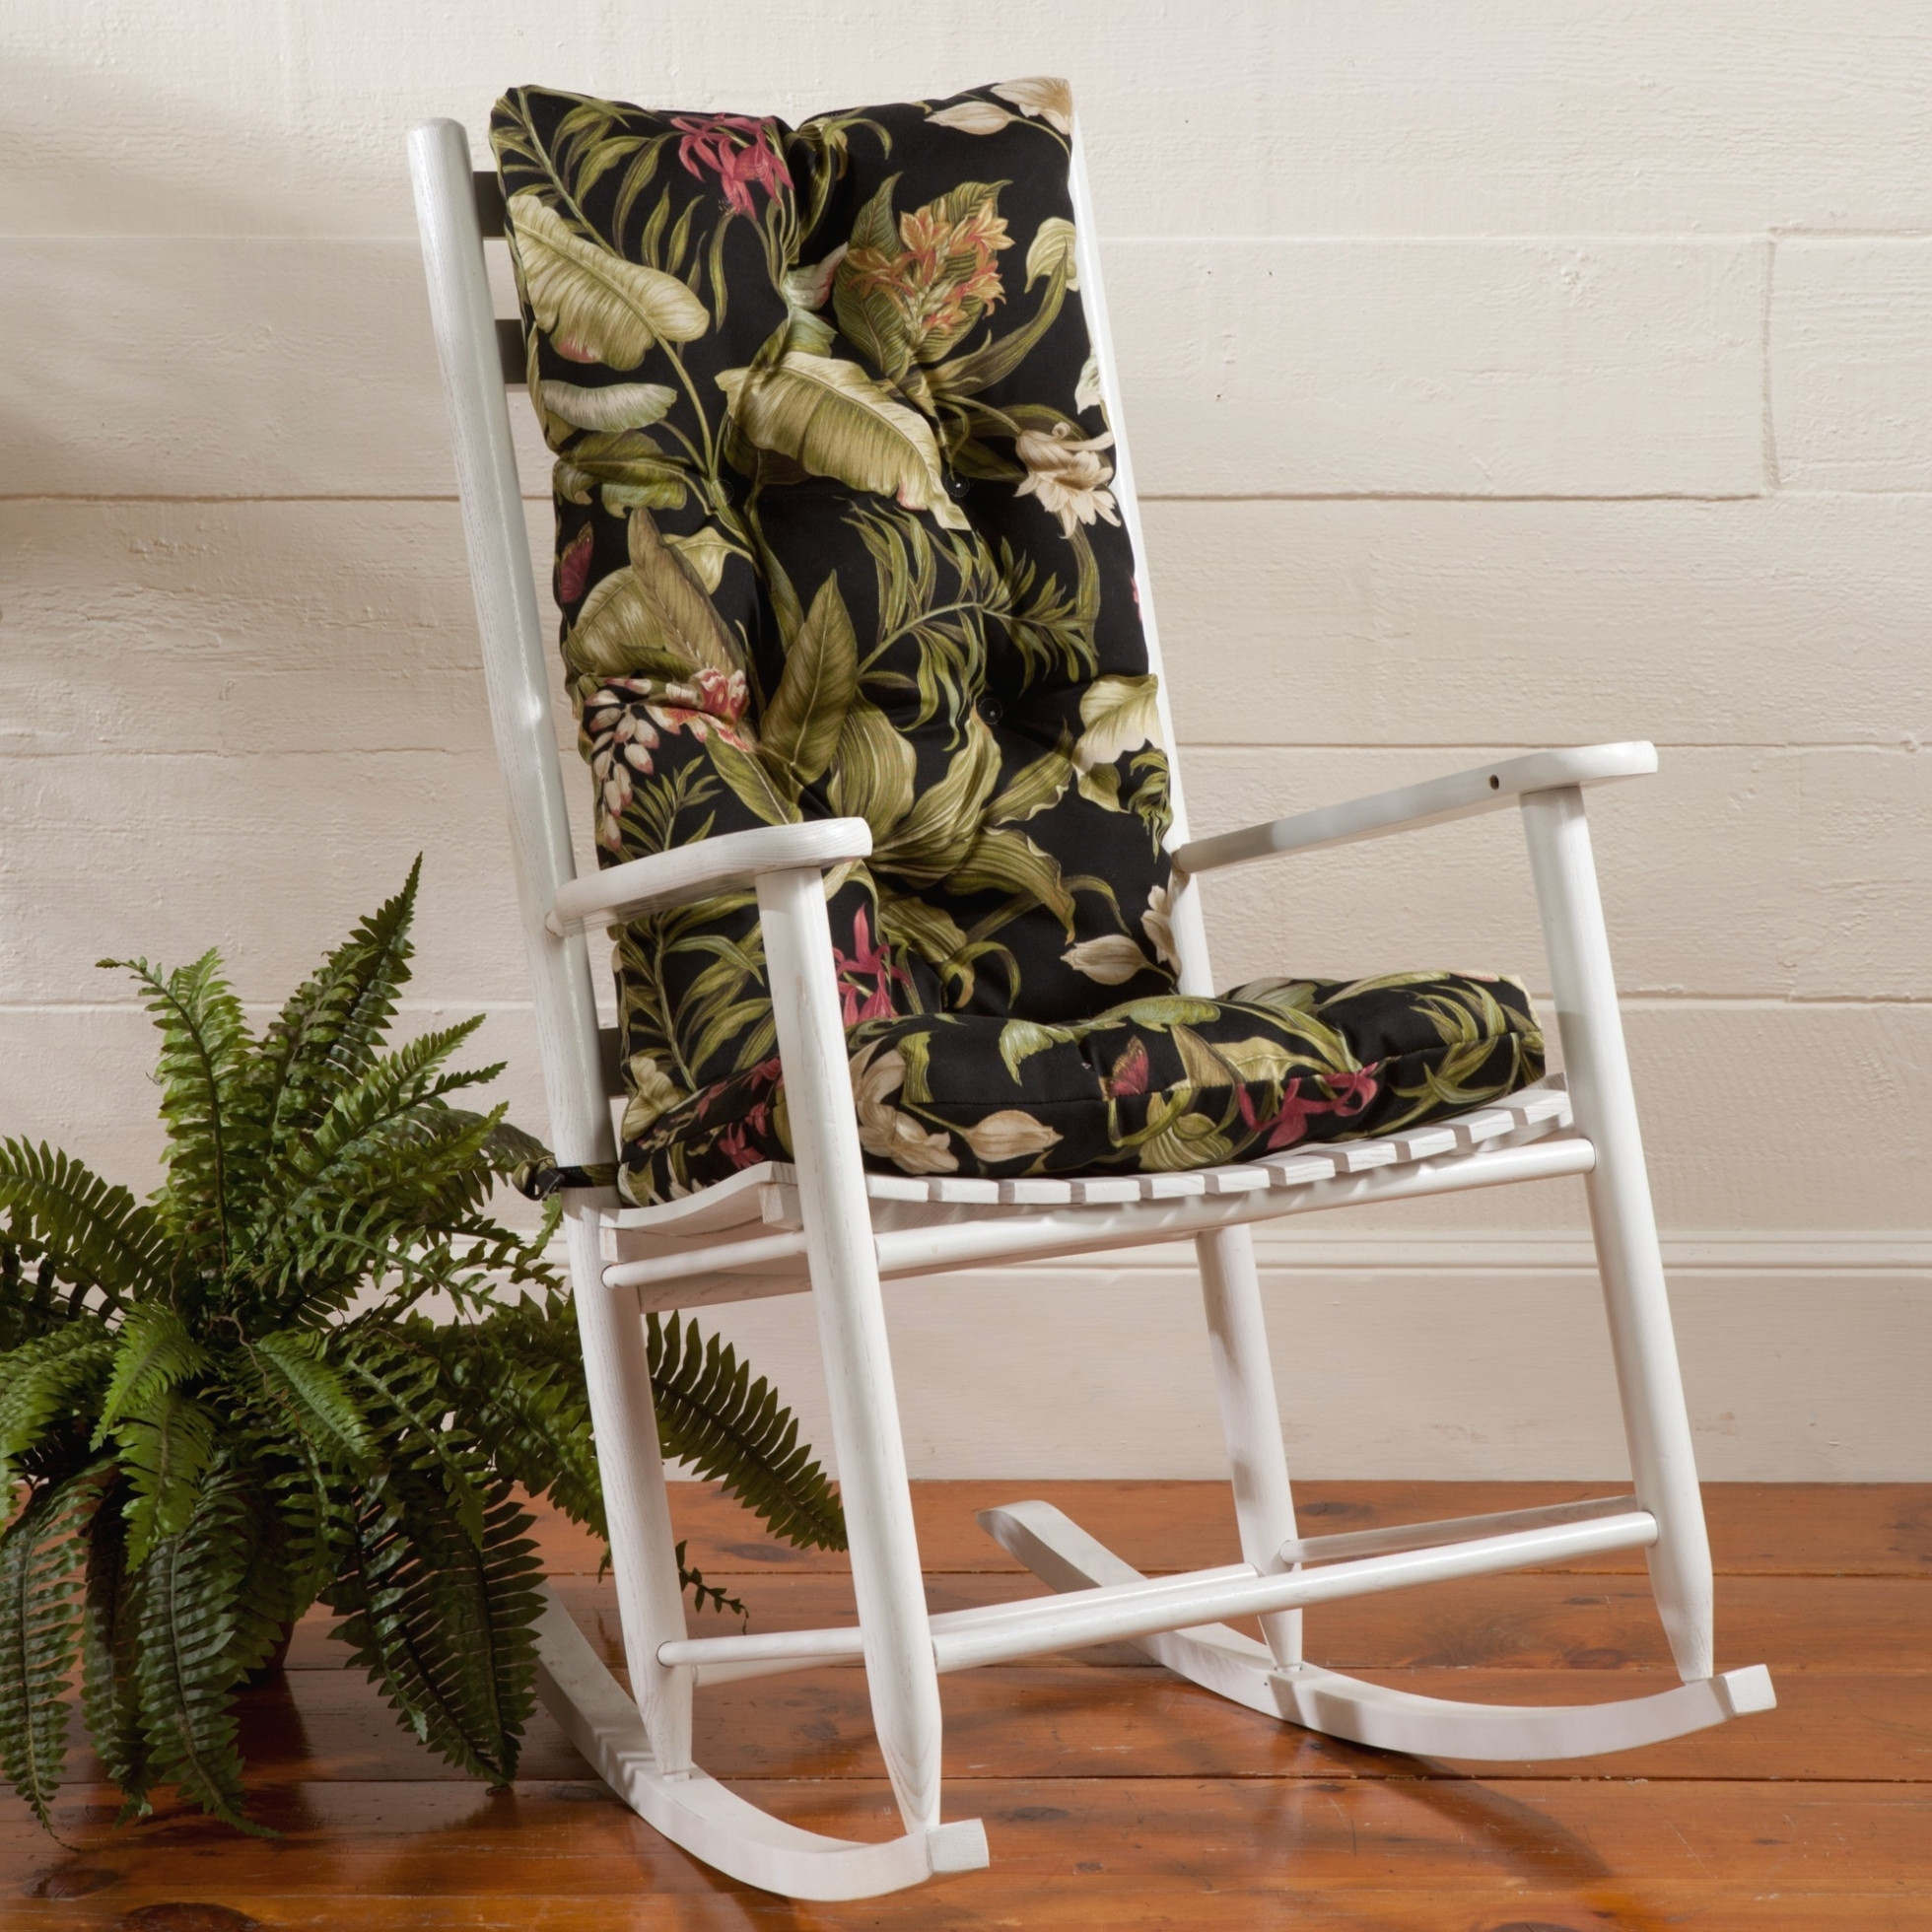 Preferred Furniture: White Wooden Indoor Rocking Chairs With Green Leaves Inside Rocking Chair Cushions For Outdoor (View 6 of 15)